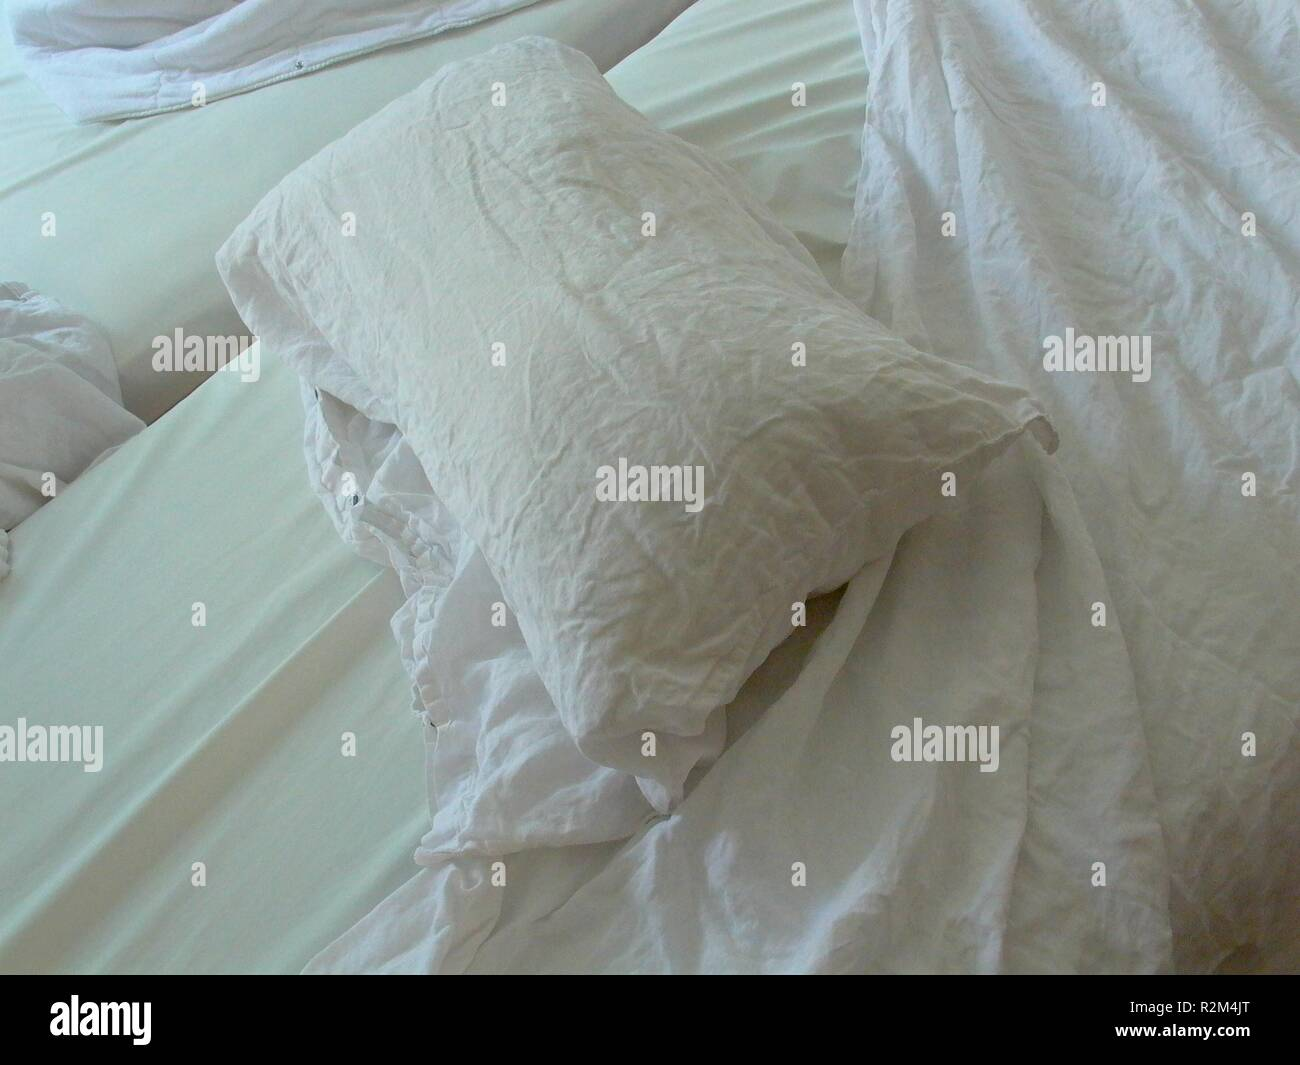 make beds - Stock Image